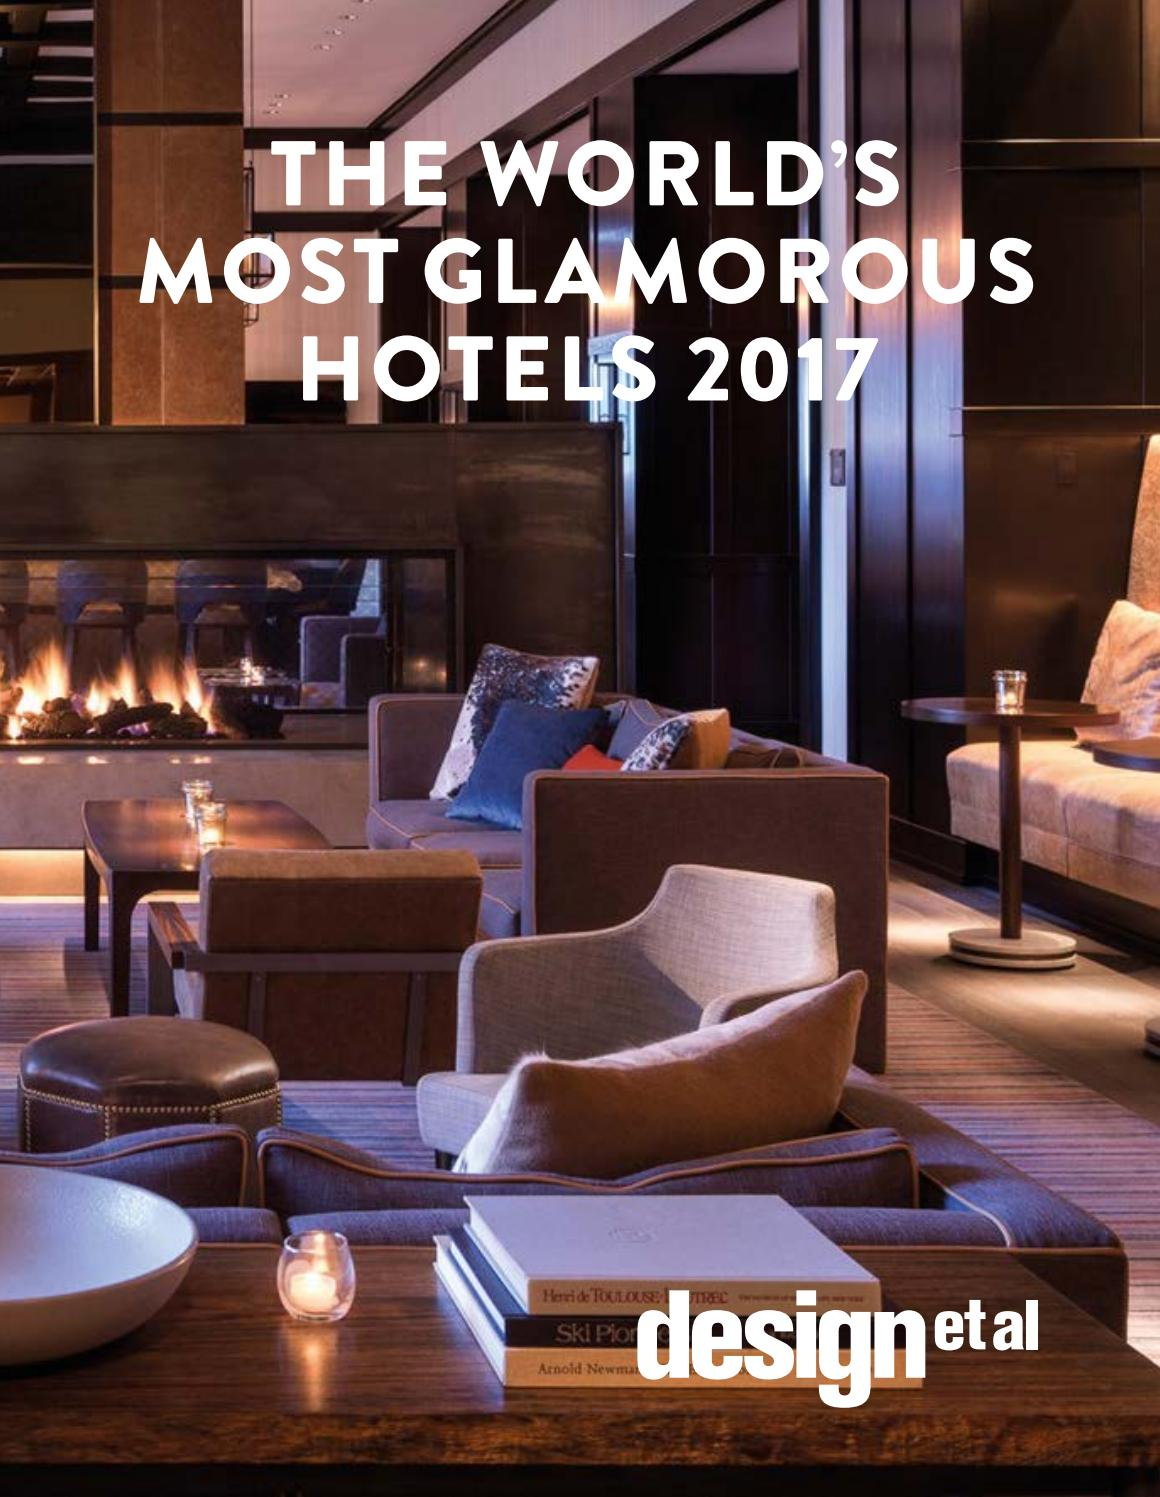 the world's most glamorous hotels 2017design et al - issuu